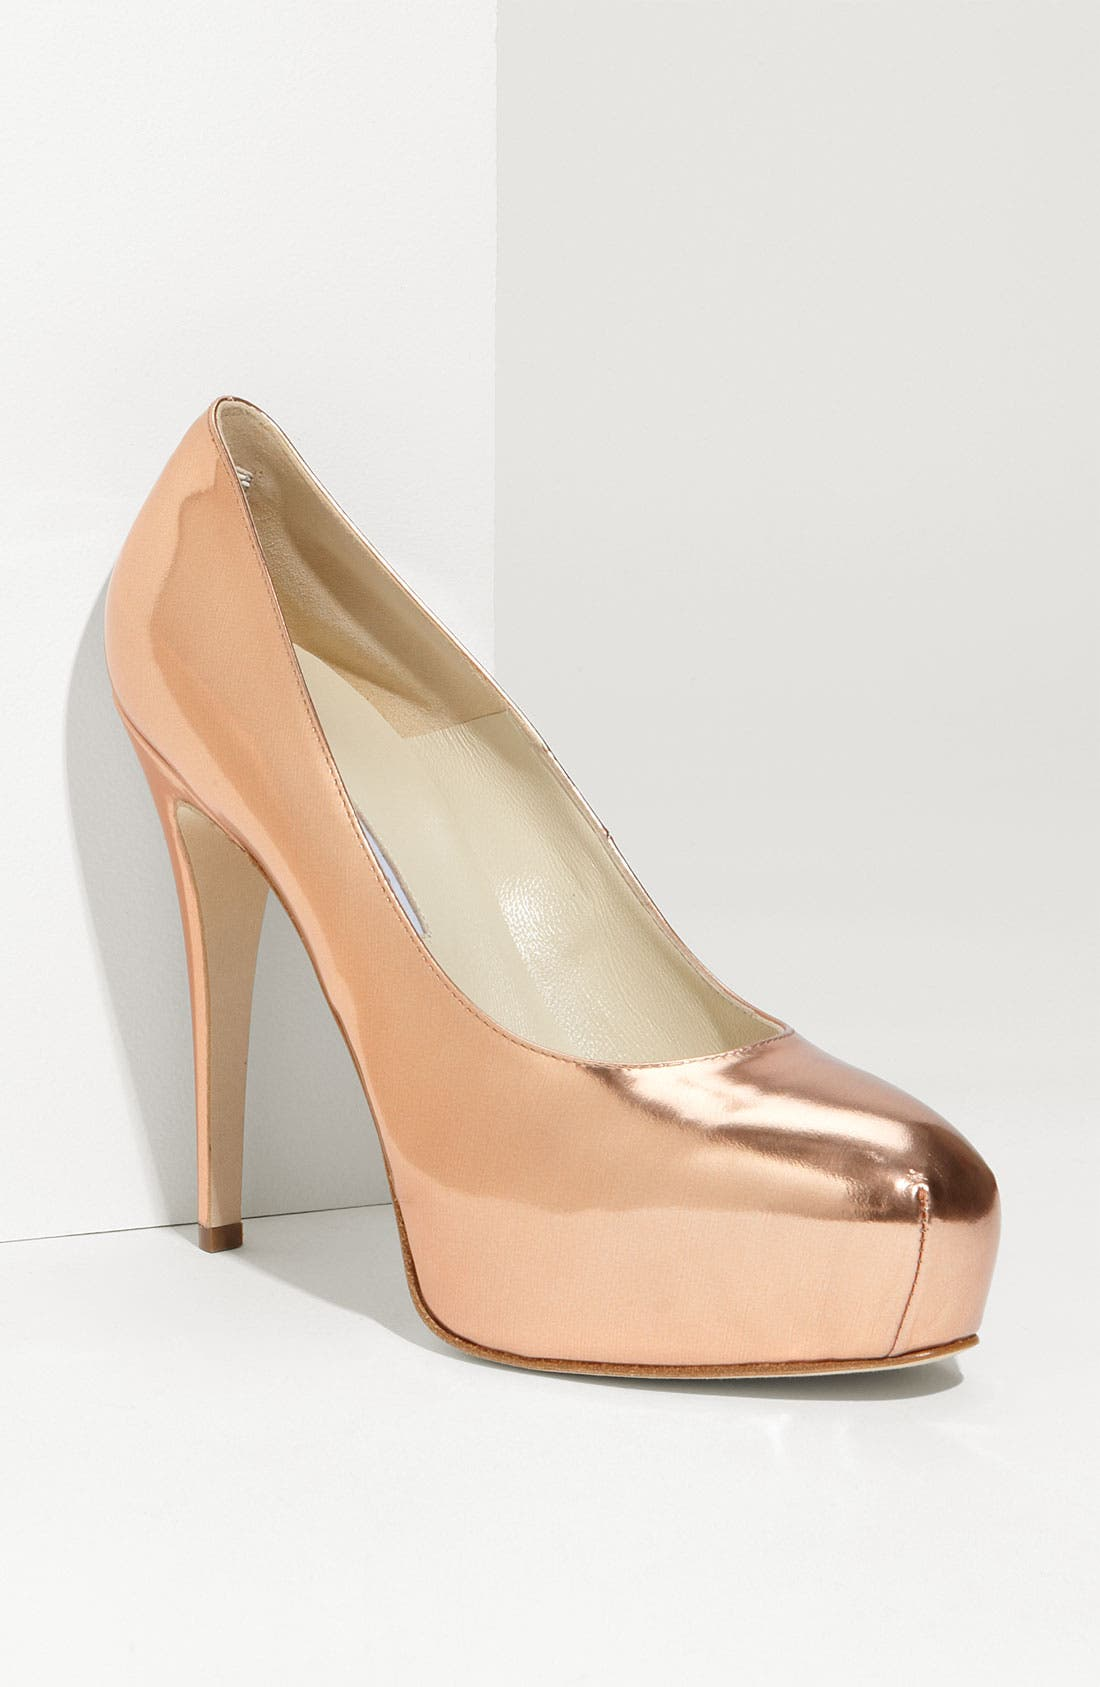 Alternate Image 1 Selected - Brian Atwood 'Maniac' Covered Platform Pump